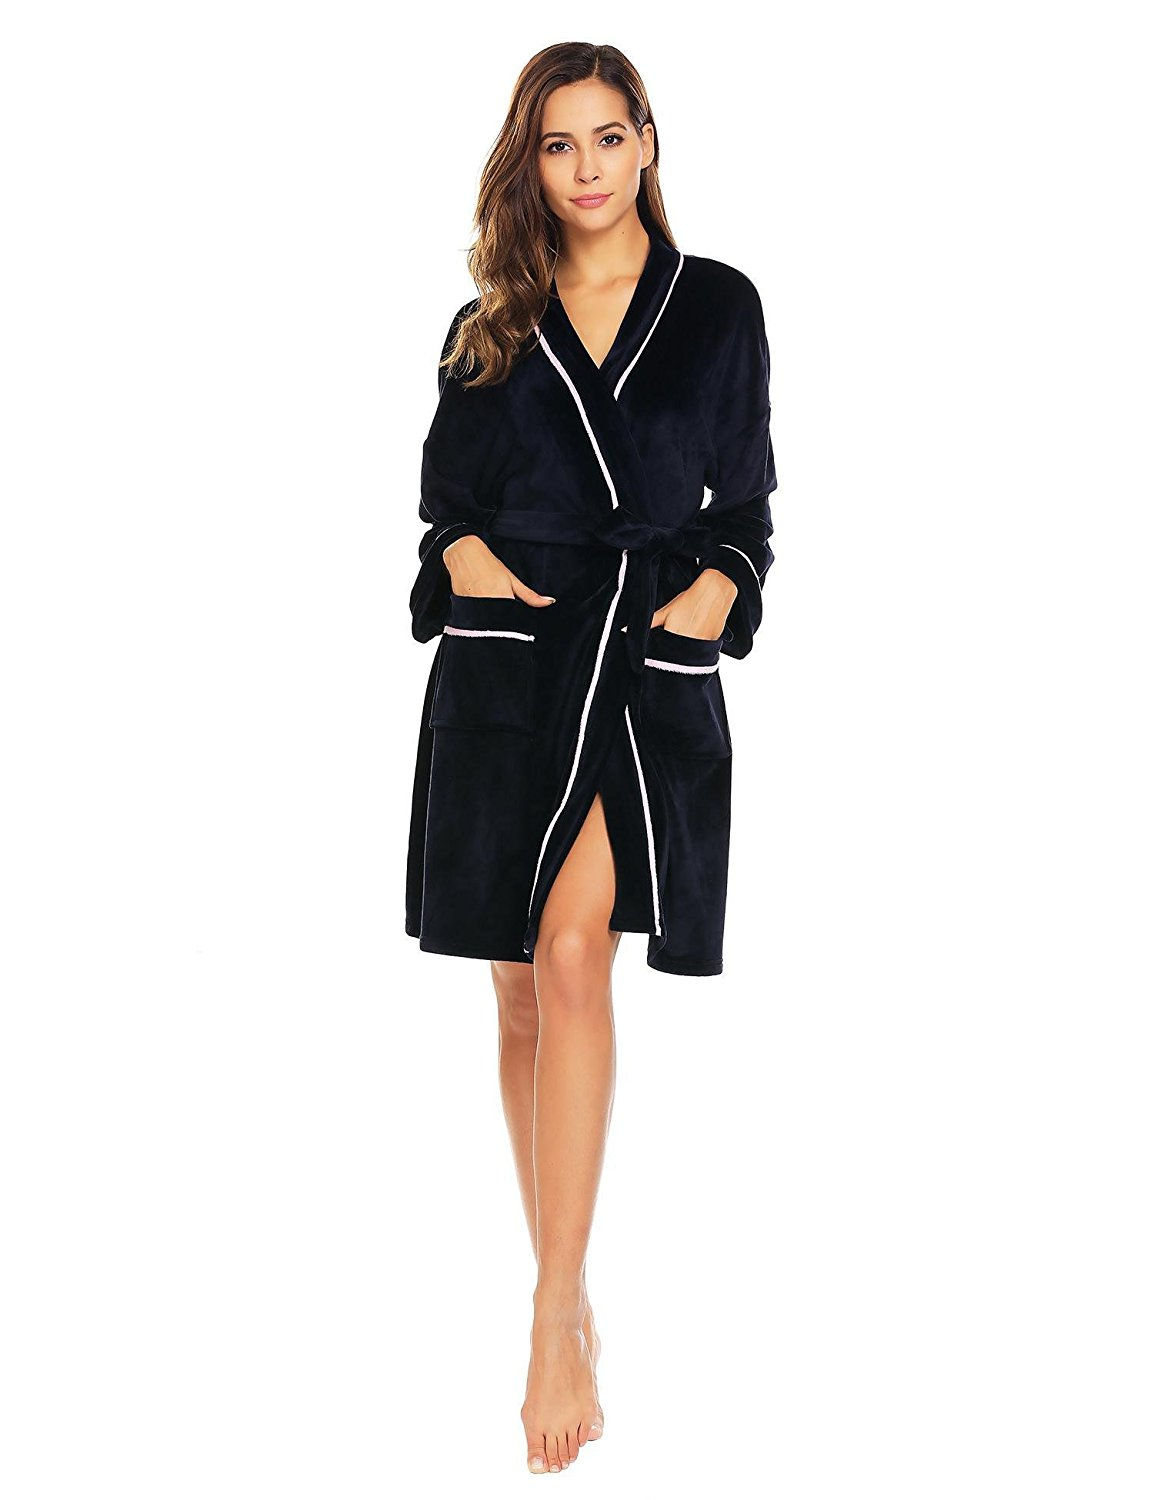 c301a09335 Get Quotations · eshion Womens Kimono Robe Plush Short Long Sleeve Terry  Cloth Robe with Belt and Pockets